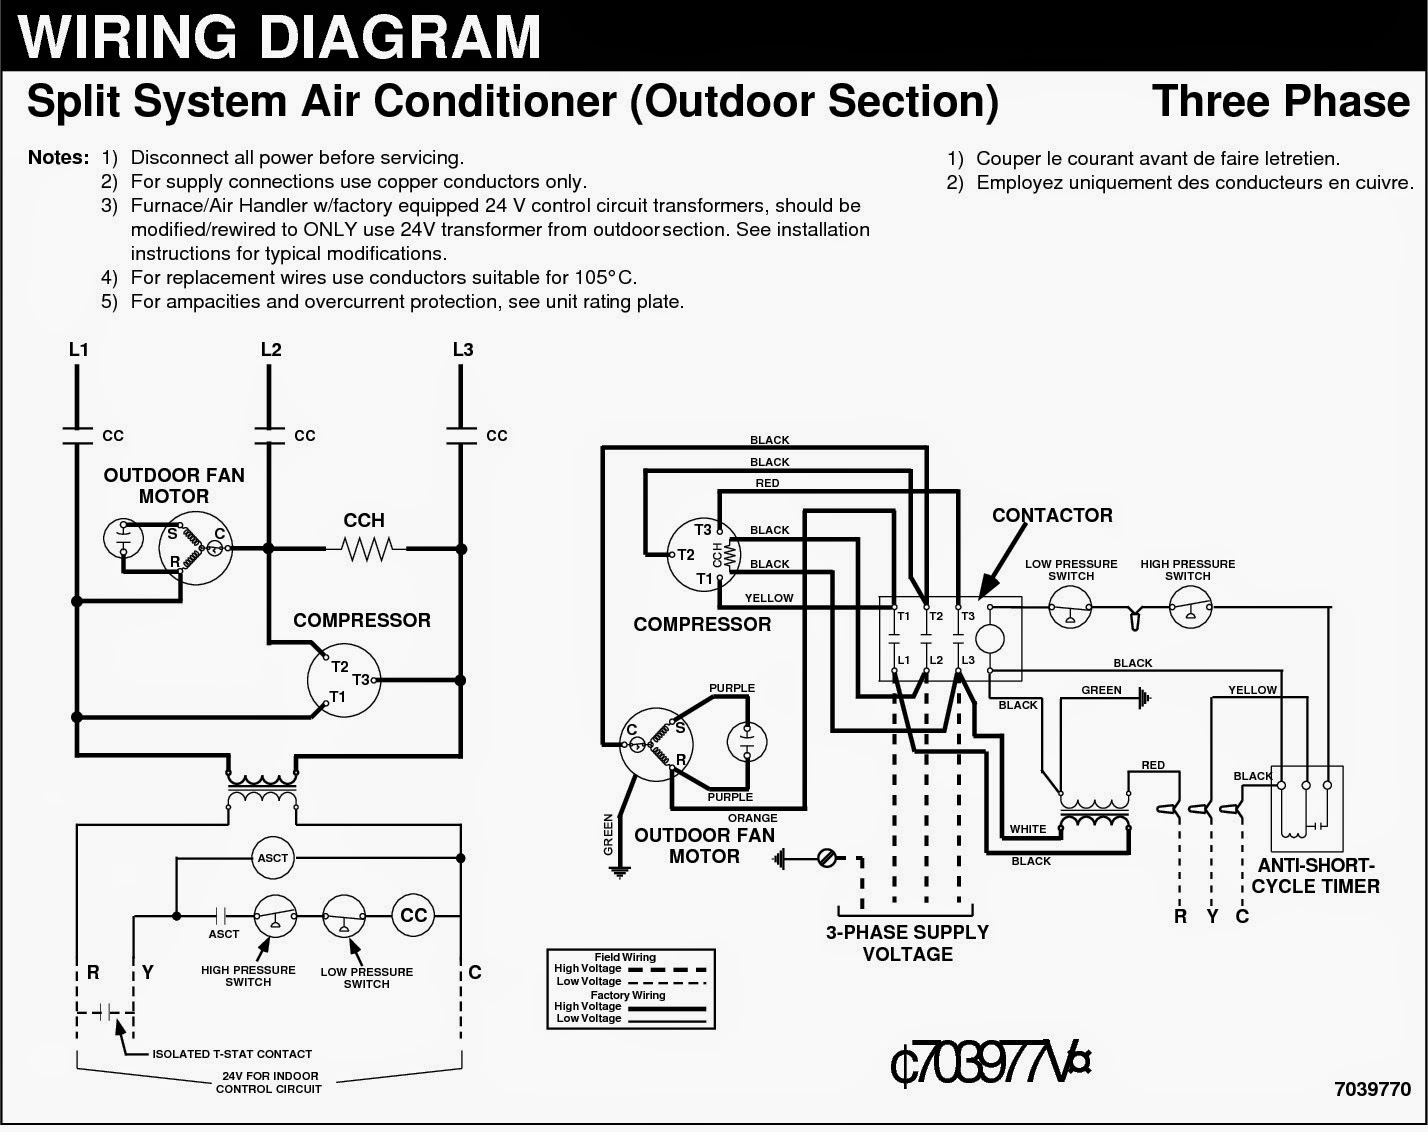 3+phase electrical wiring diagrams for air conditioning systems part two carrier split ac wiring diagram at alyssarenee.co